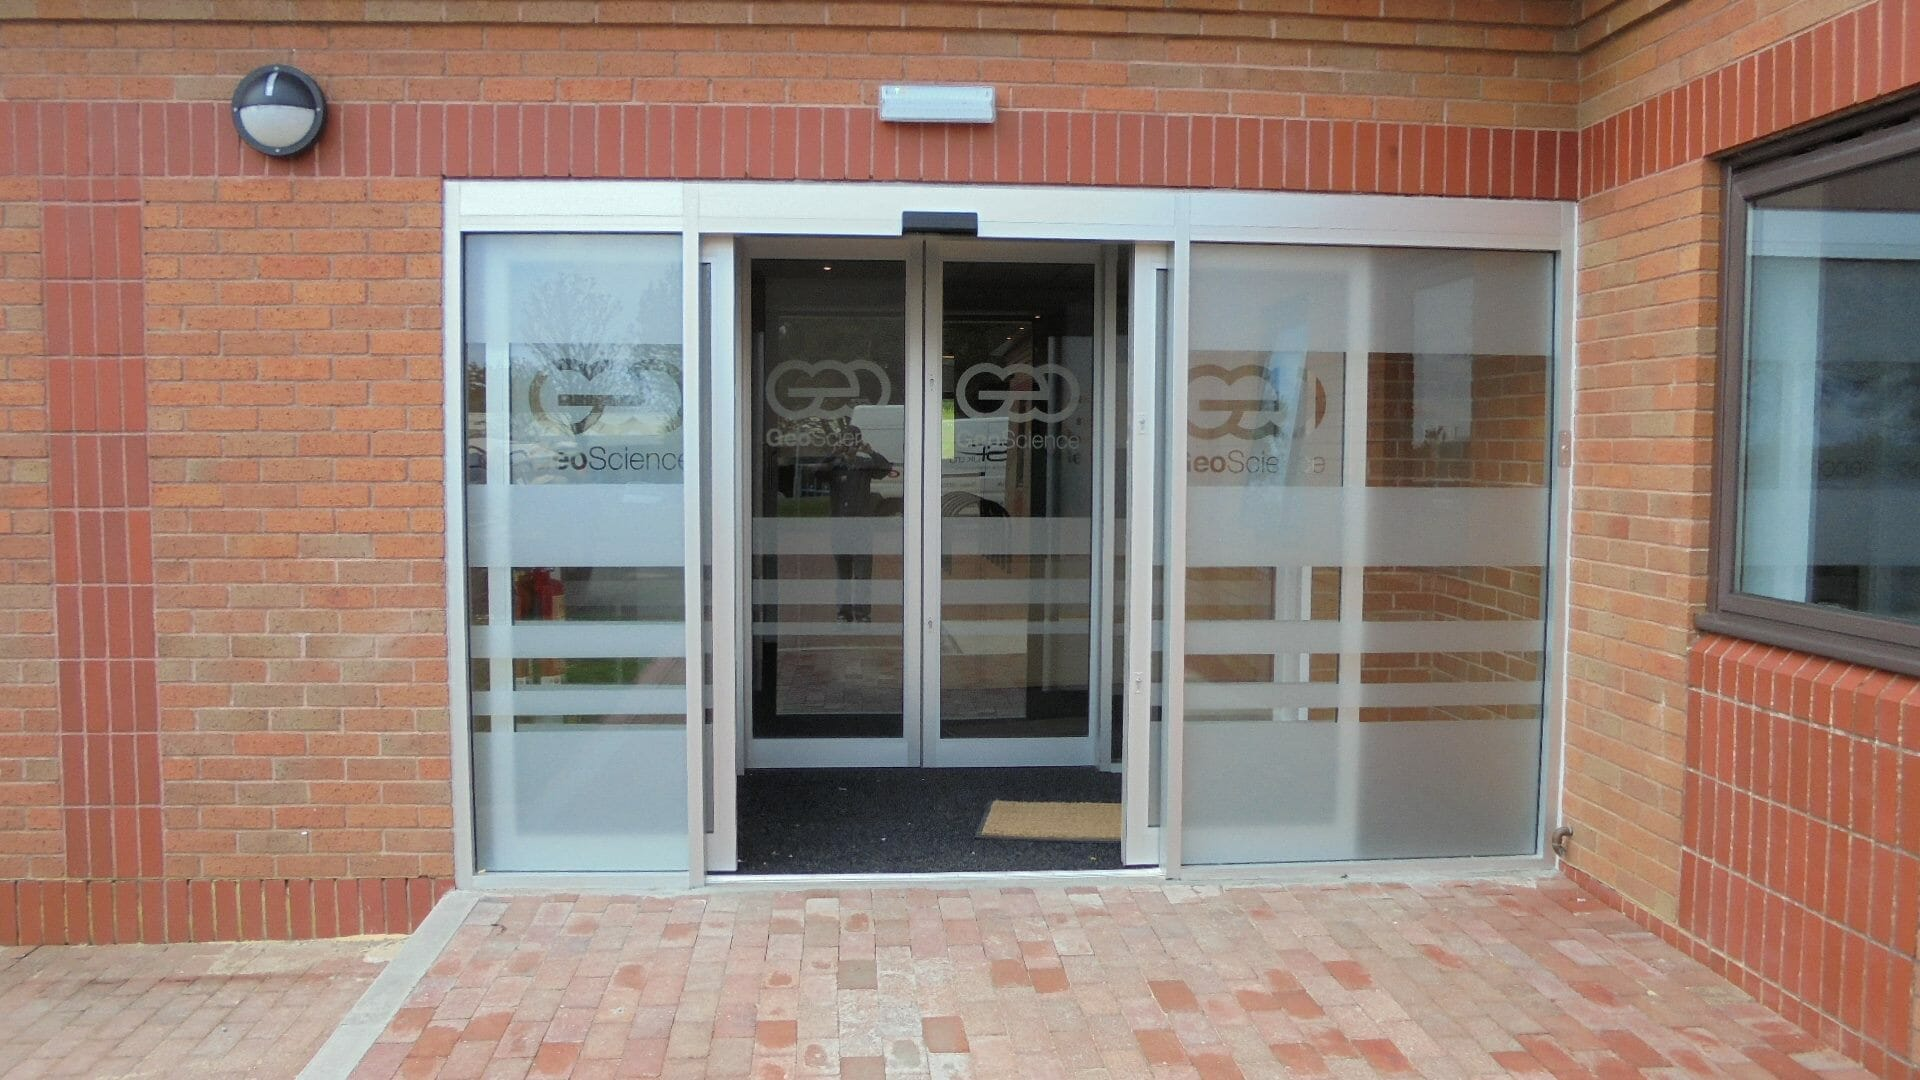 Le Meilleur Automatic Door Opening Doors For You Erreka Automatic Ce Mois Ci